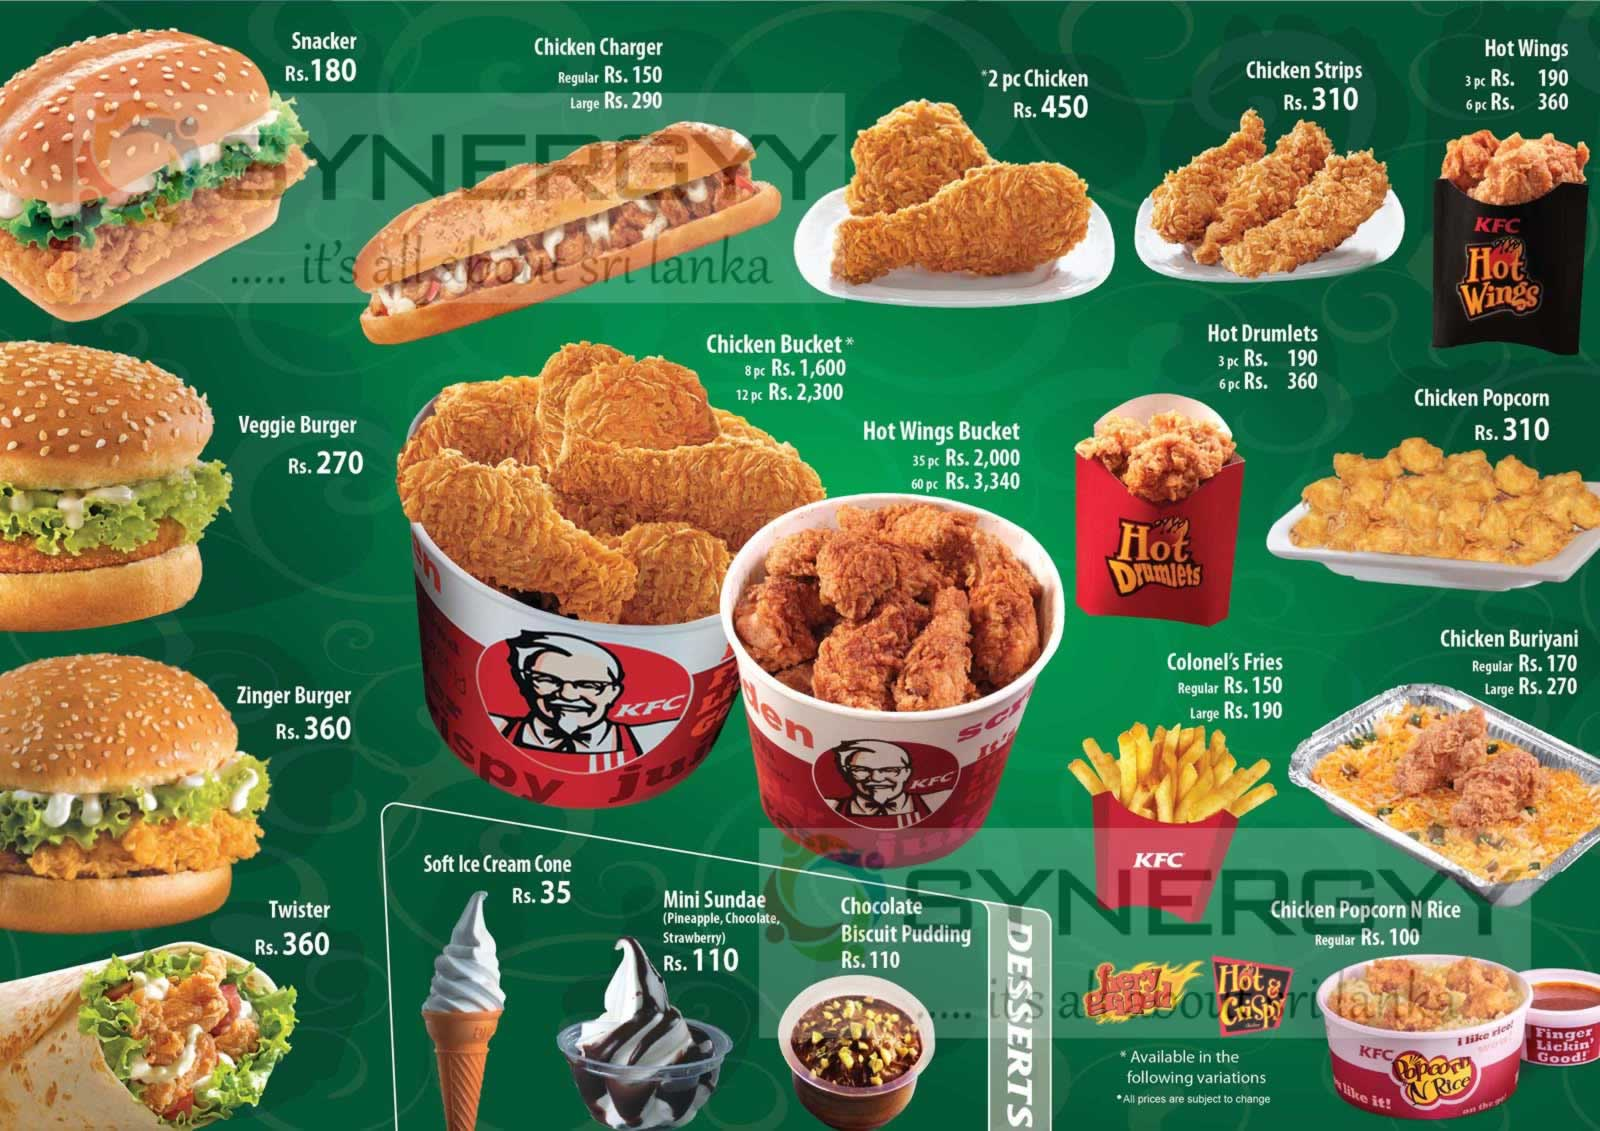 KFC Sri Lanka Menu / Prices – Updated August 2013 – SynergyY